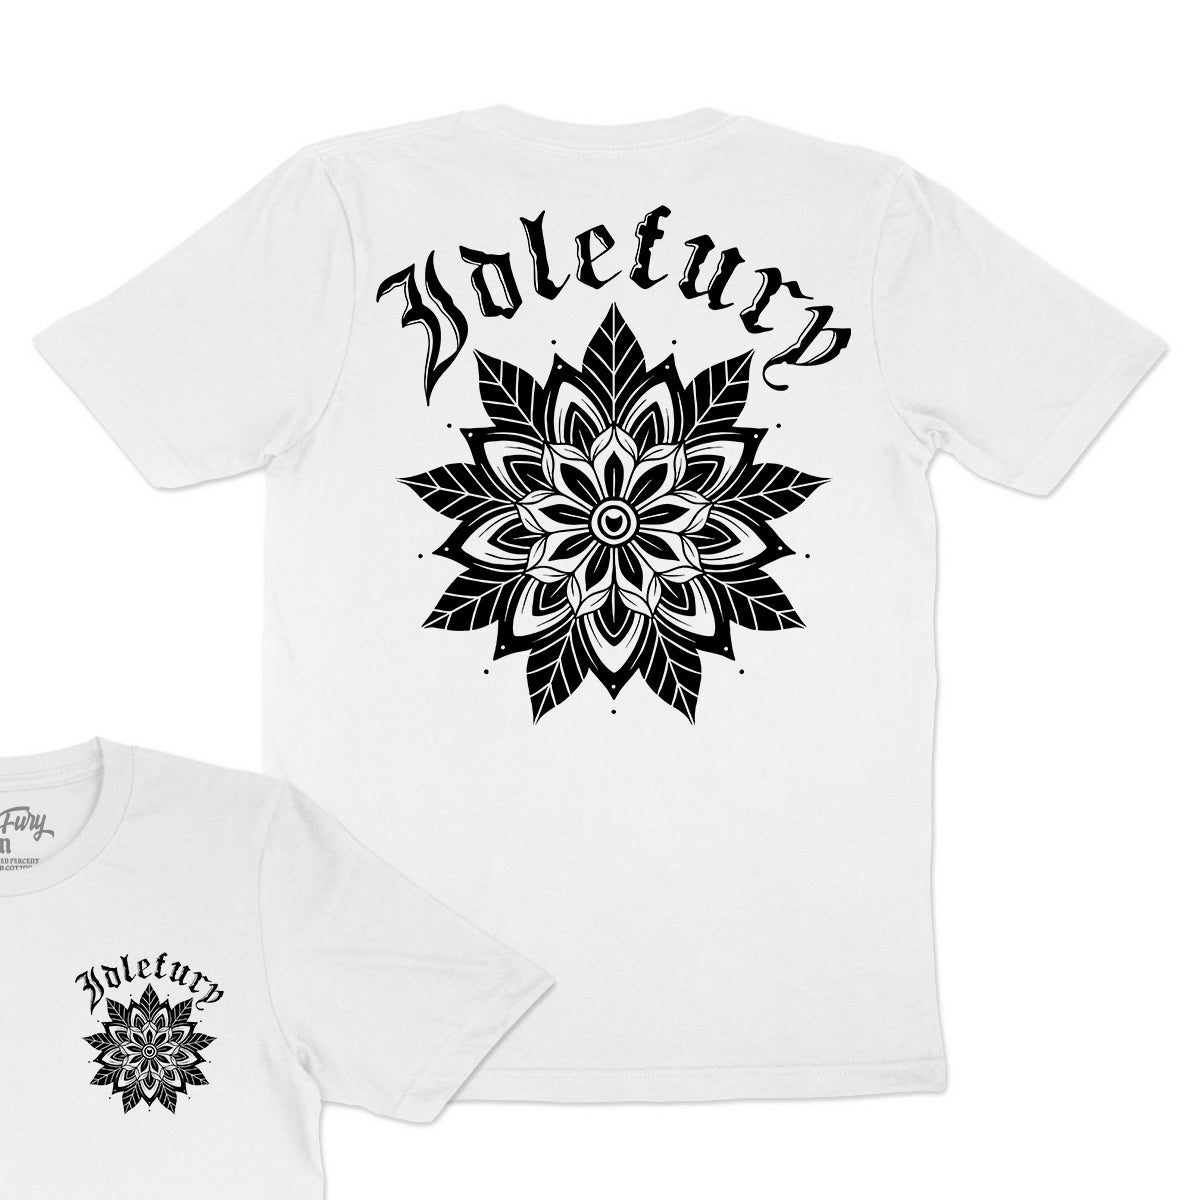 Black Mandala - White T-Shirt - Front & Back Print